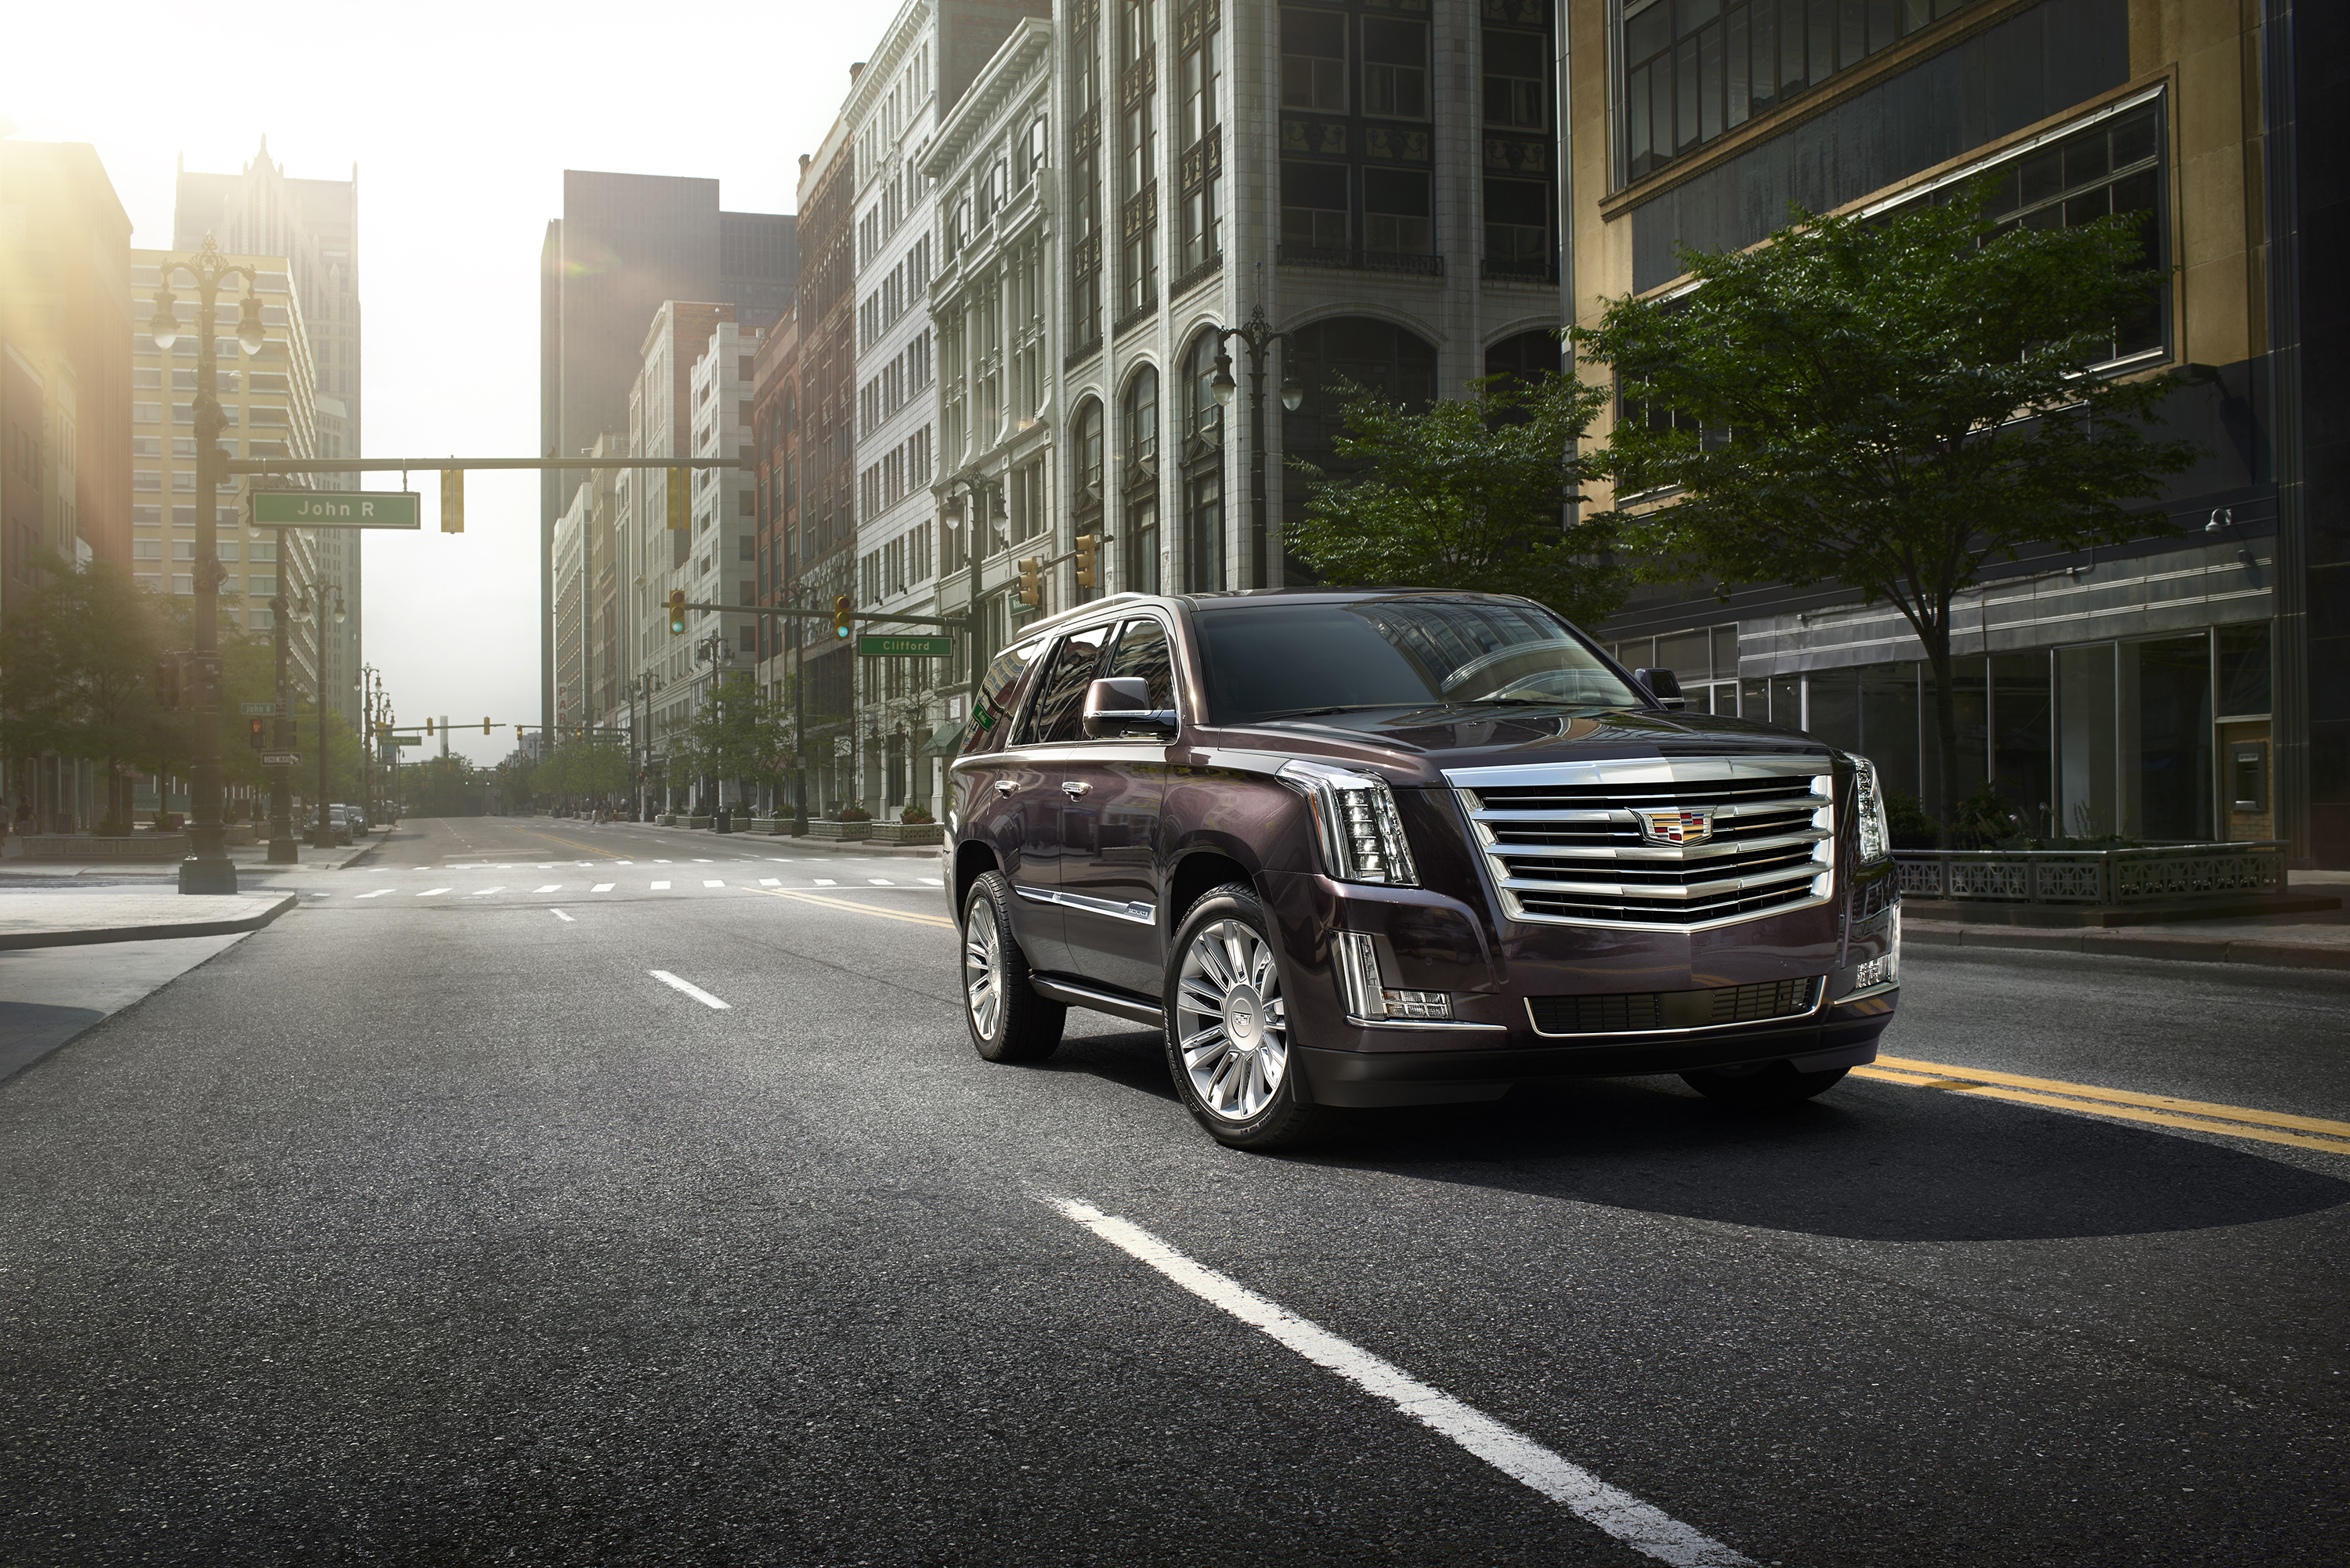 New platinum collection added features elevate escalade craftsmanship and technology